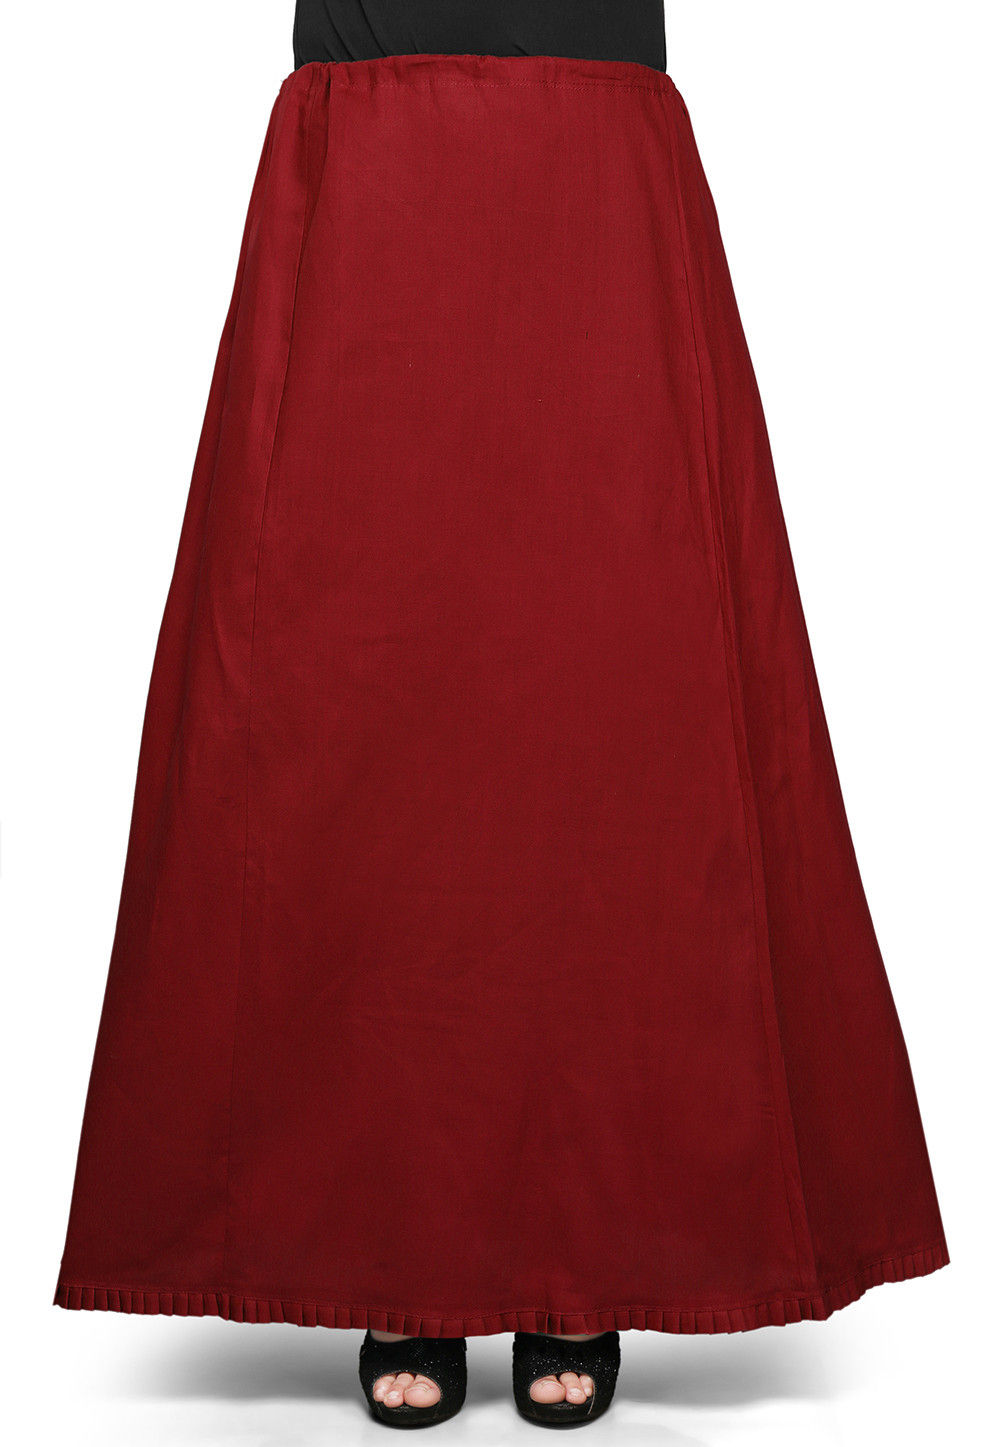 Cotton Petticoat in Red